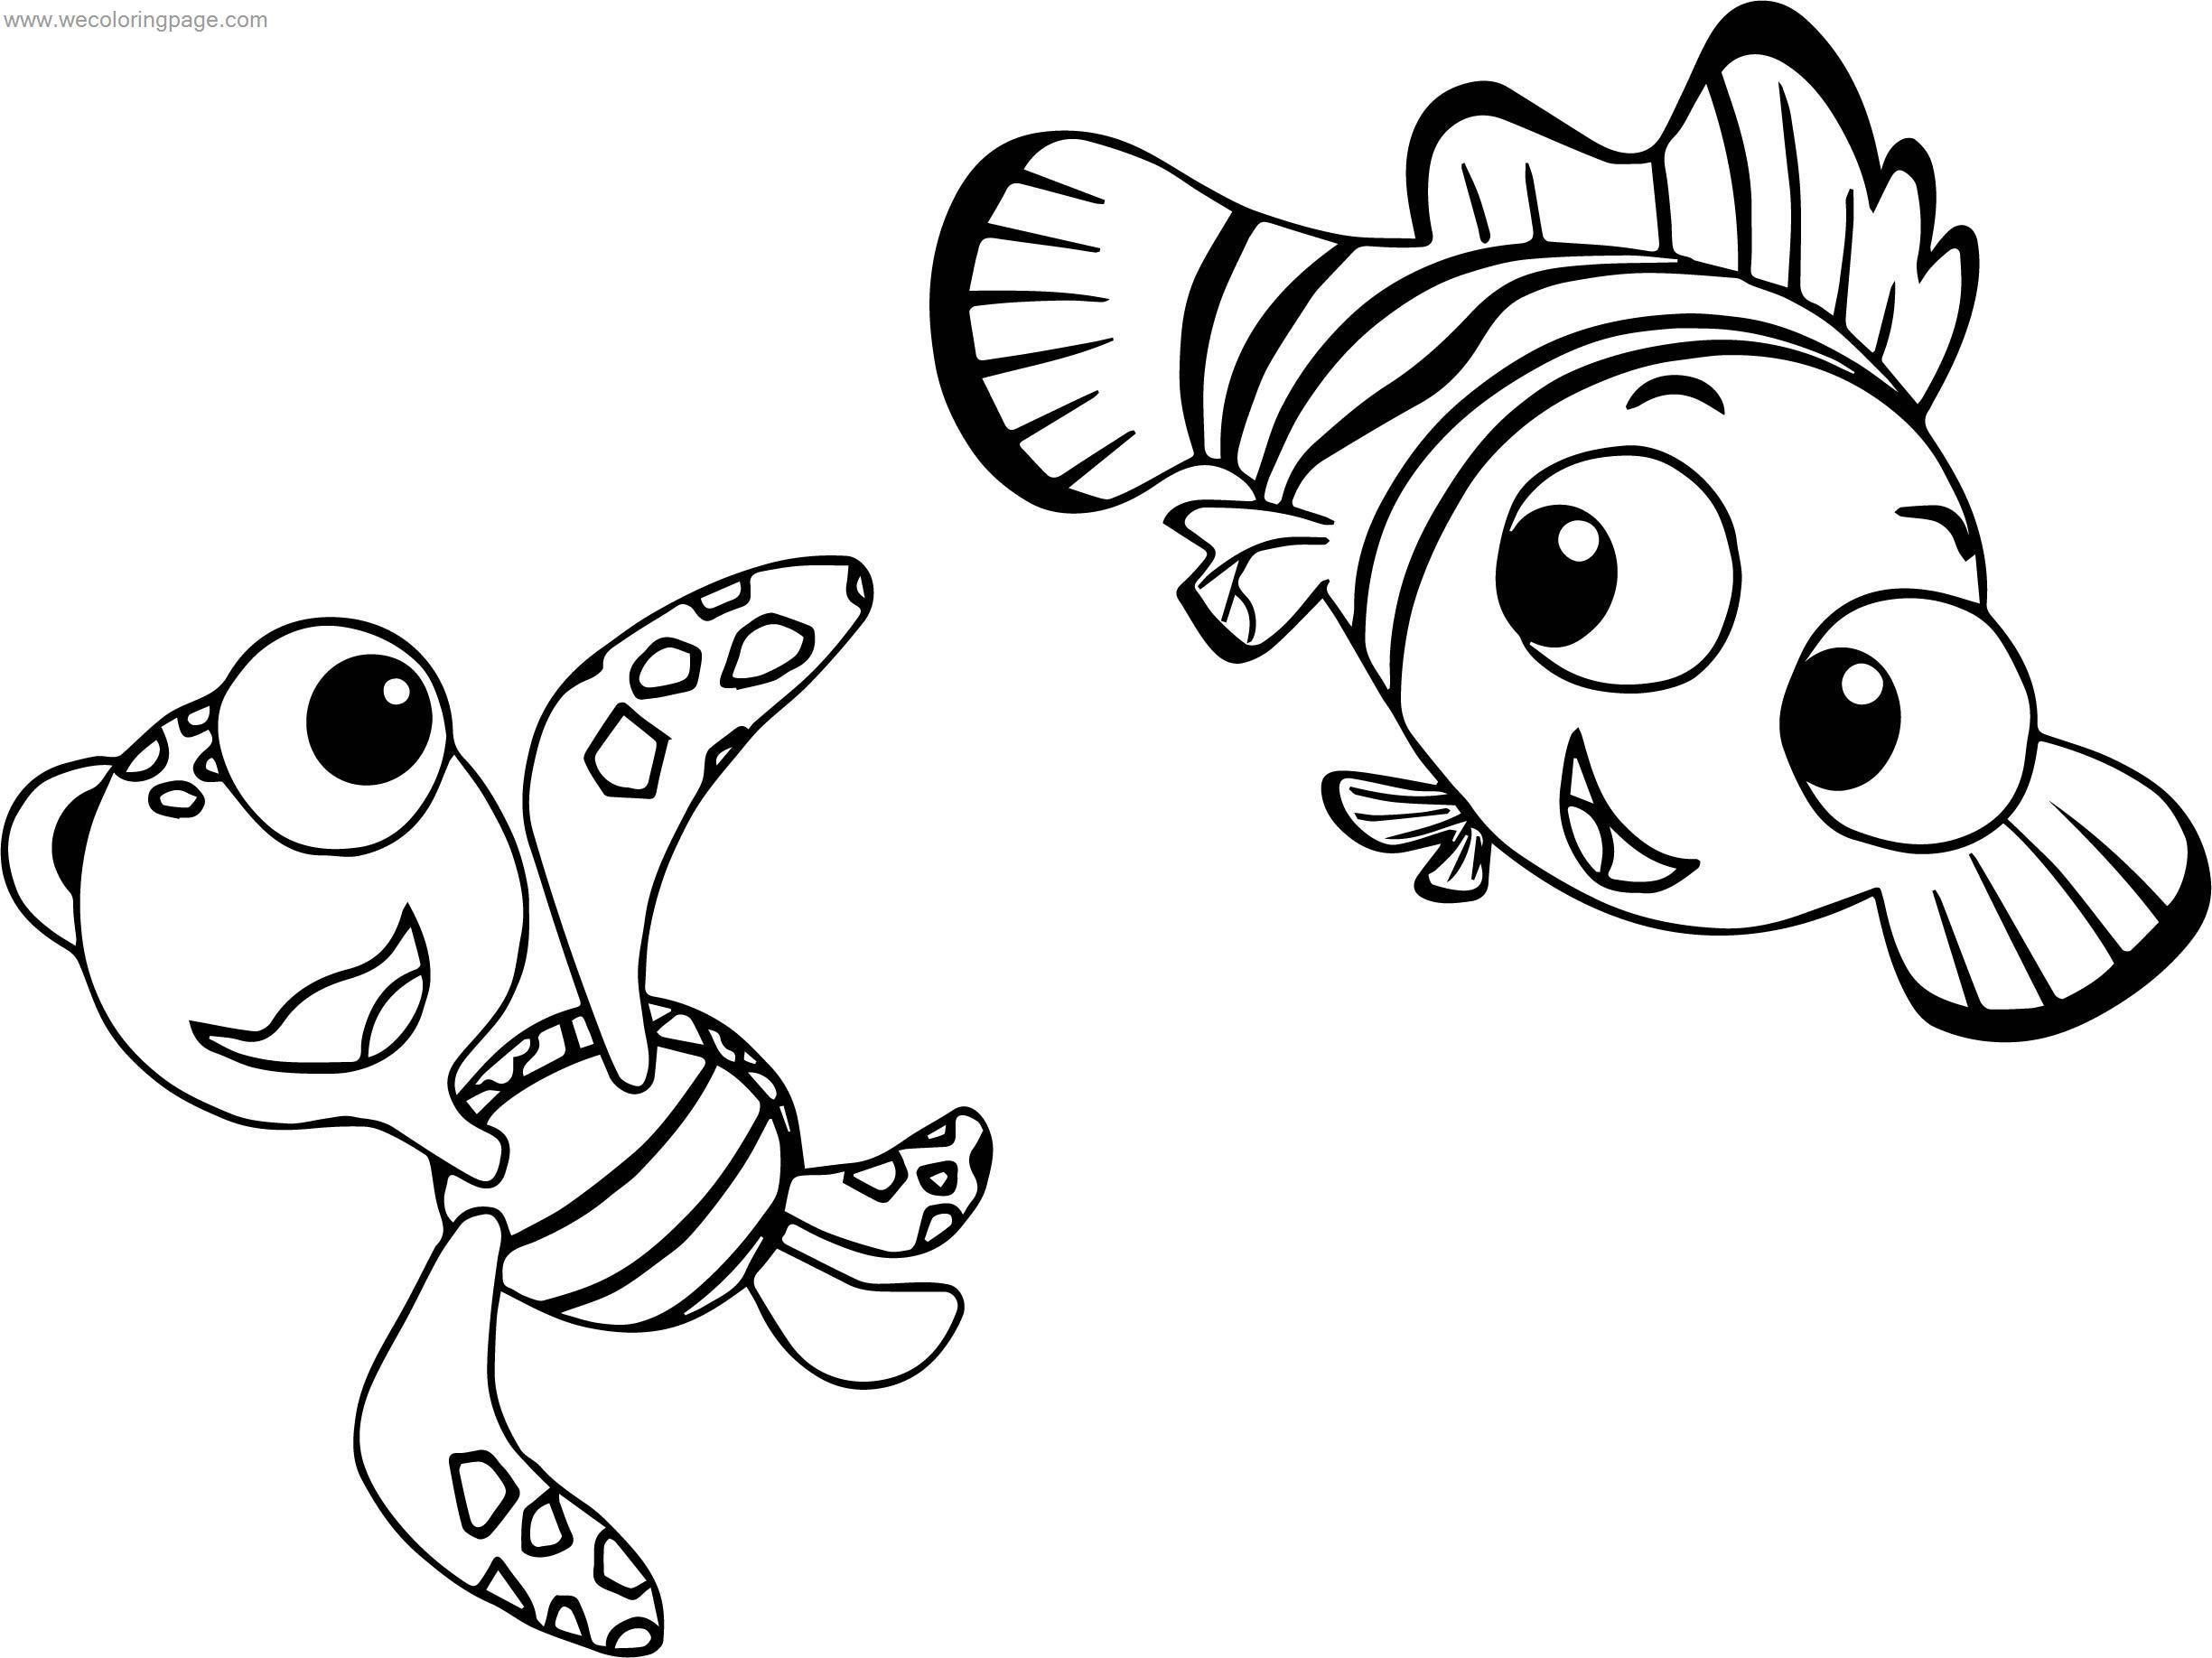 Disney Finding Nemo Squirt Turtle Coloring Pages